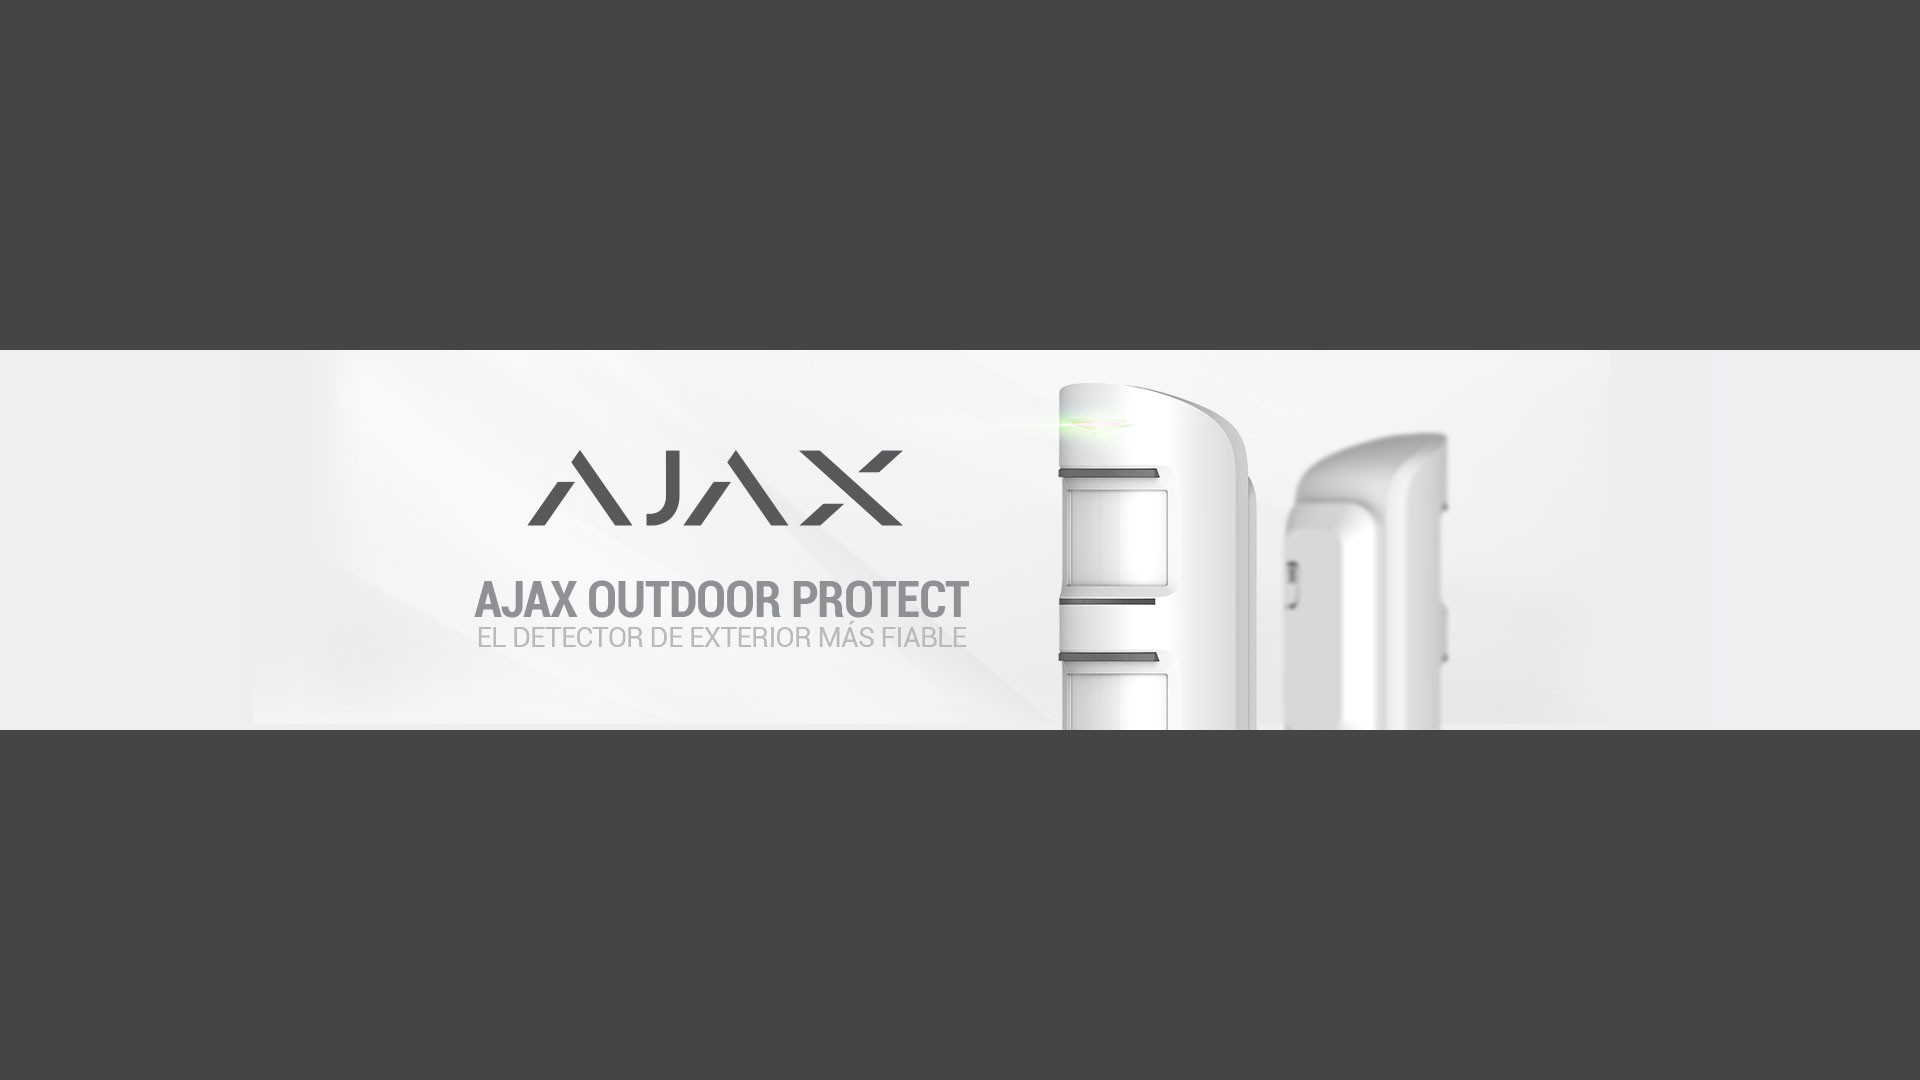 Ajax Outdoor Protect